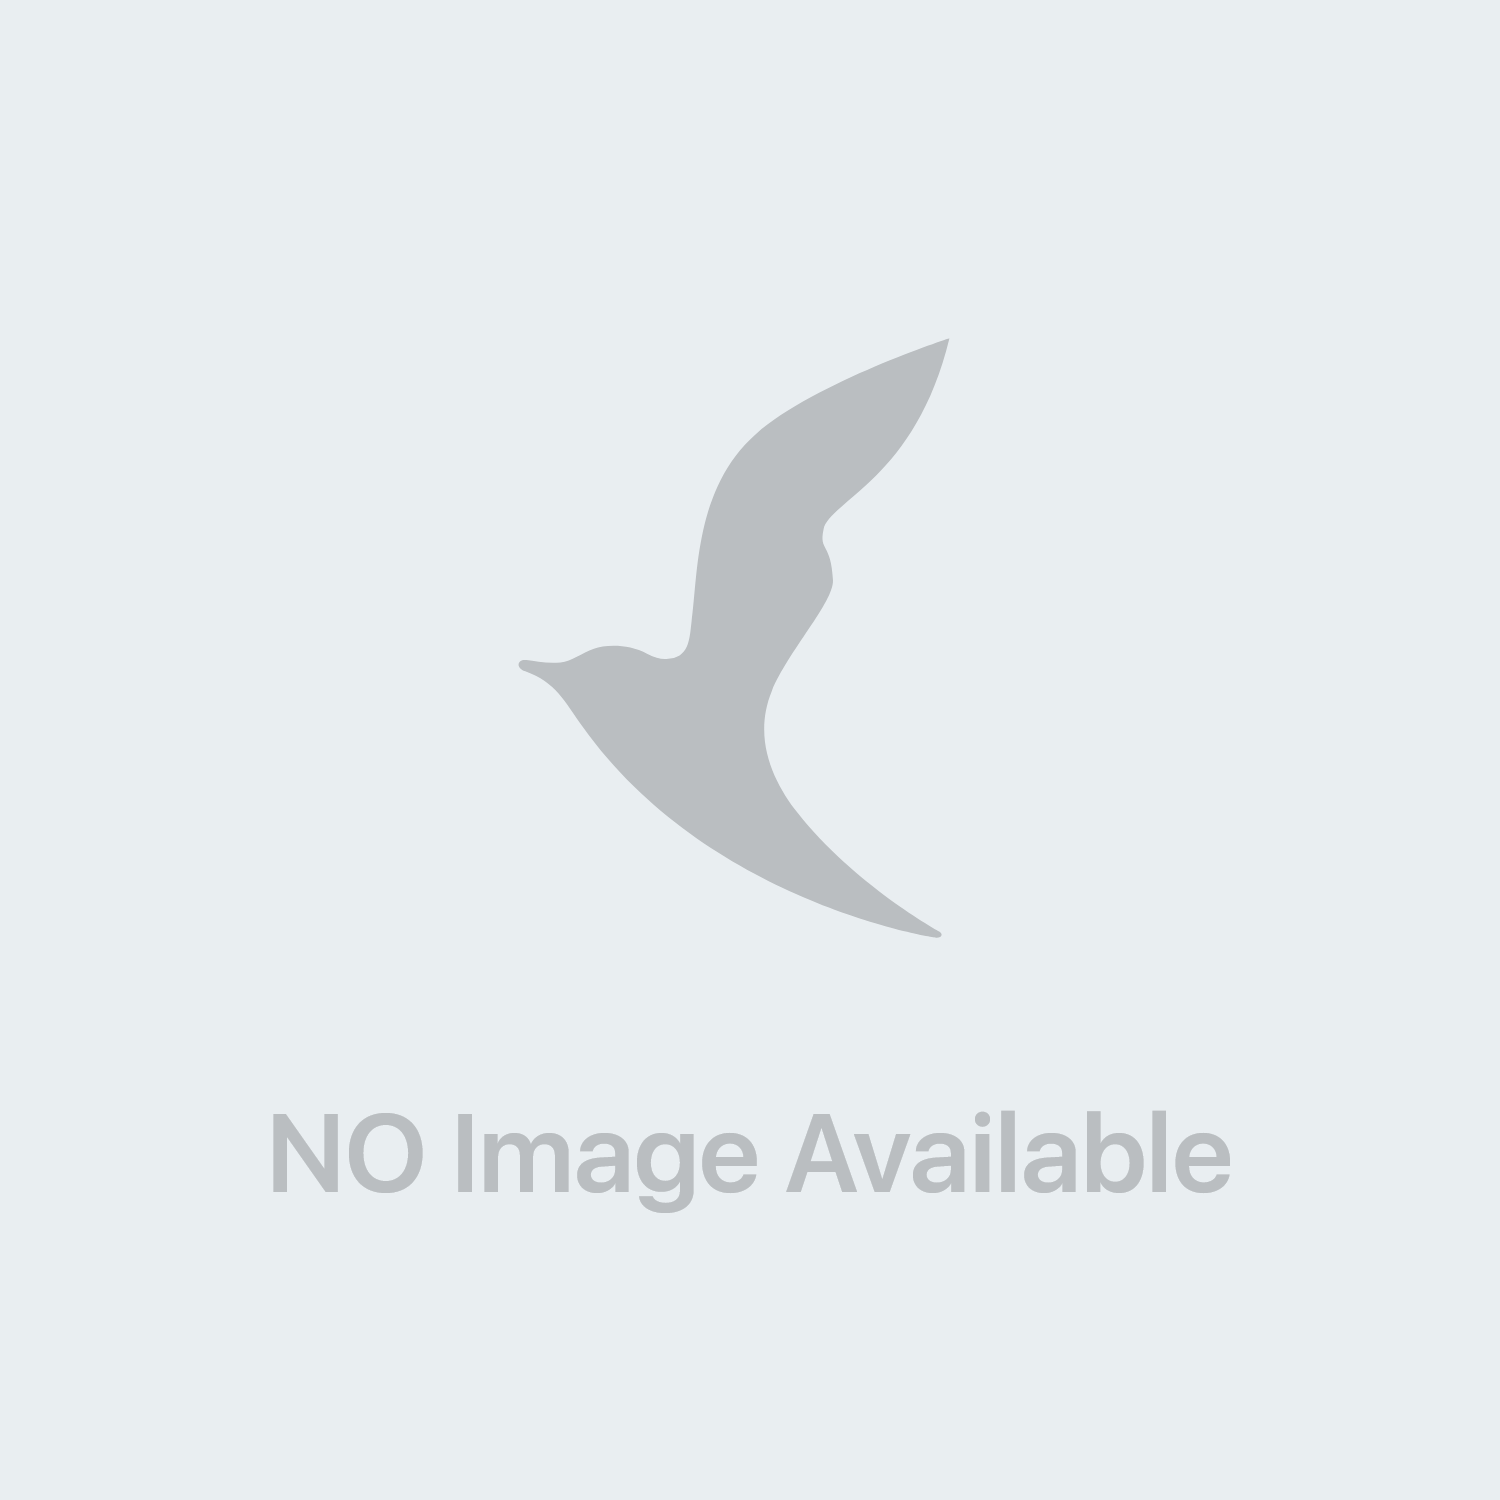 Eucerin DermoCapillaire Shampoo Lenitivo All'Urea 250 ml